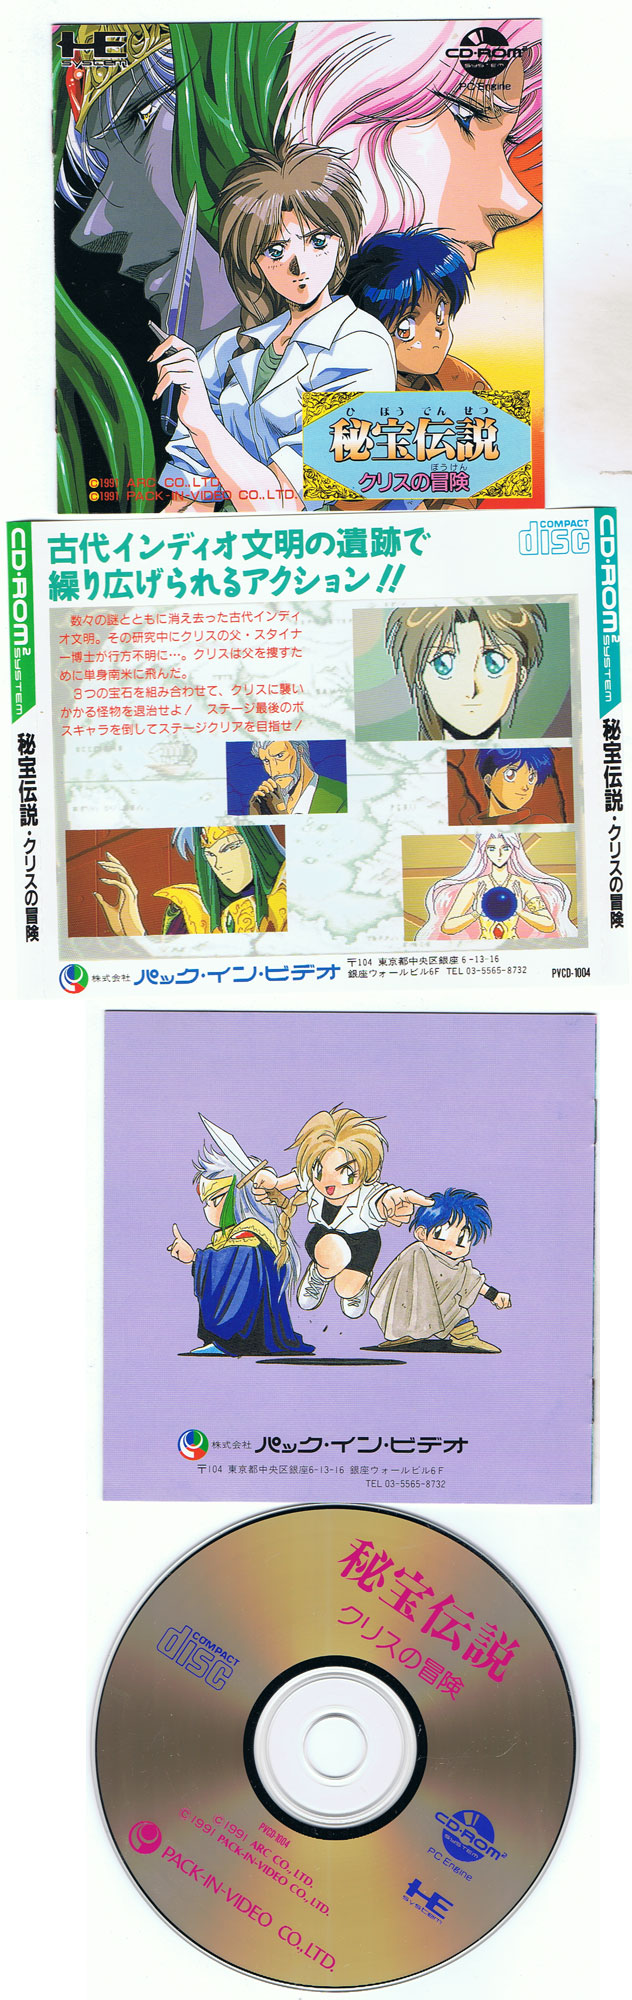 Adventures of Chris from Pack In Video - PC Engine CD ROM